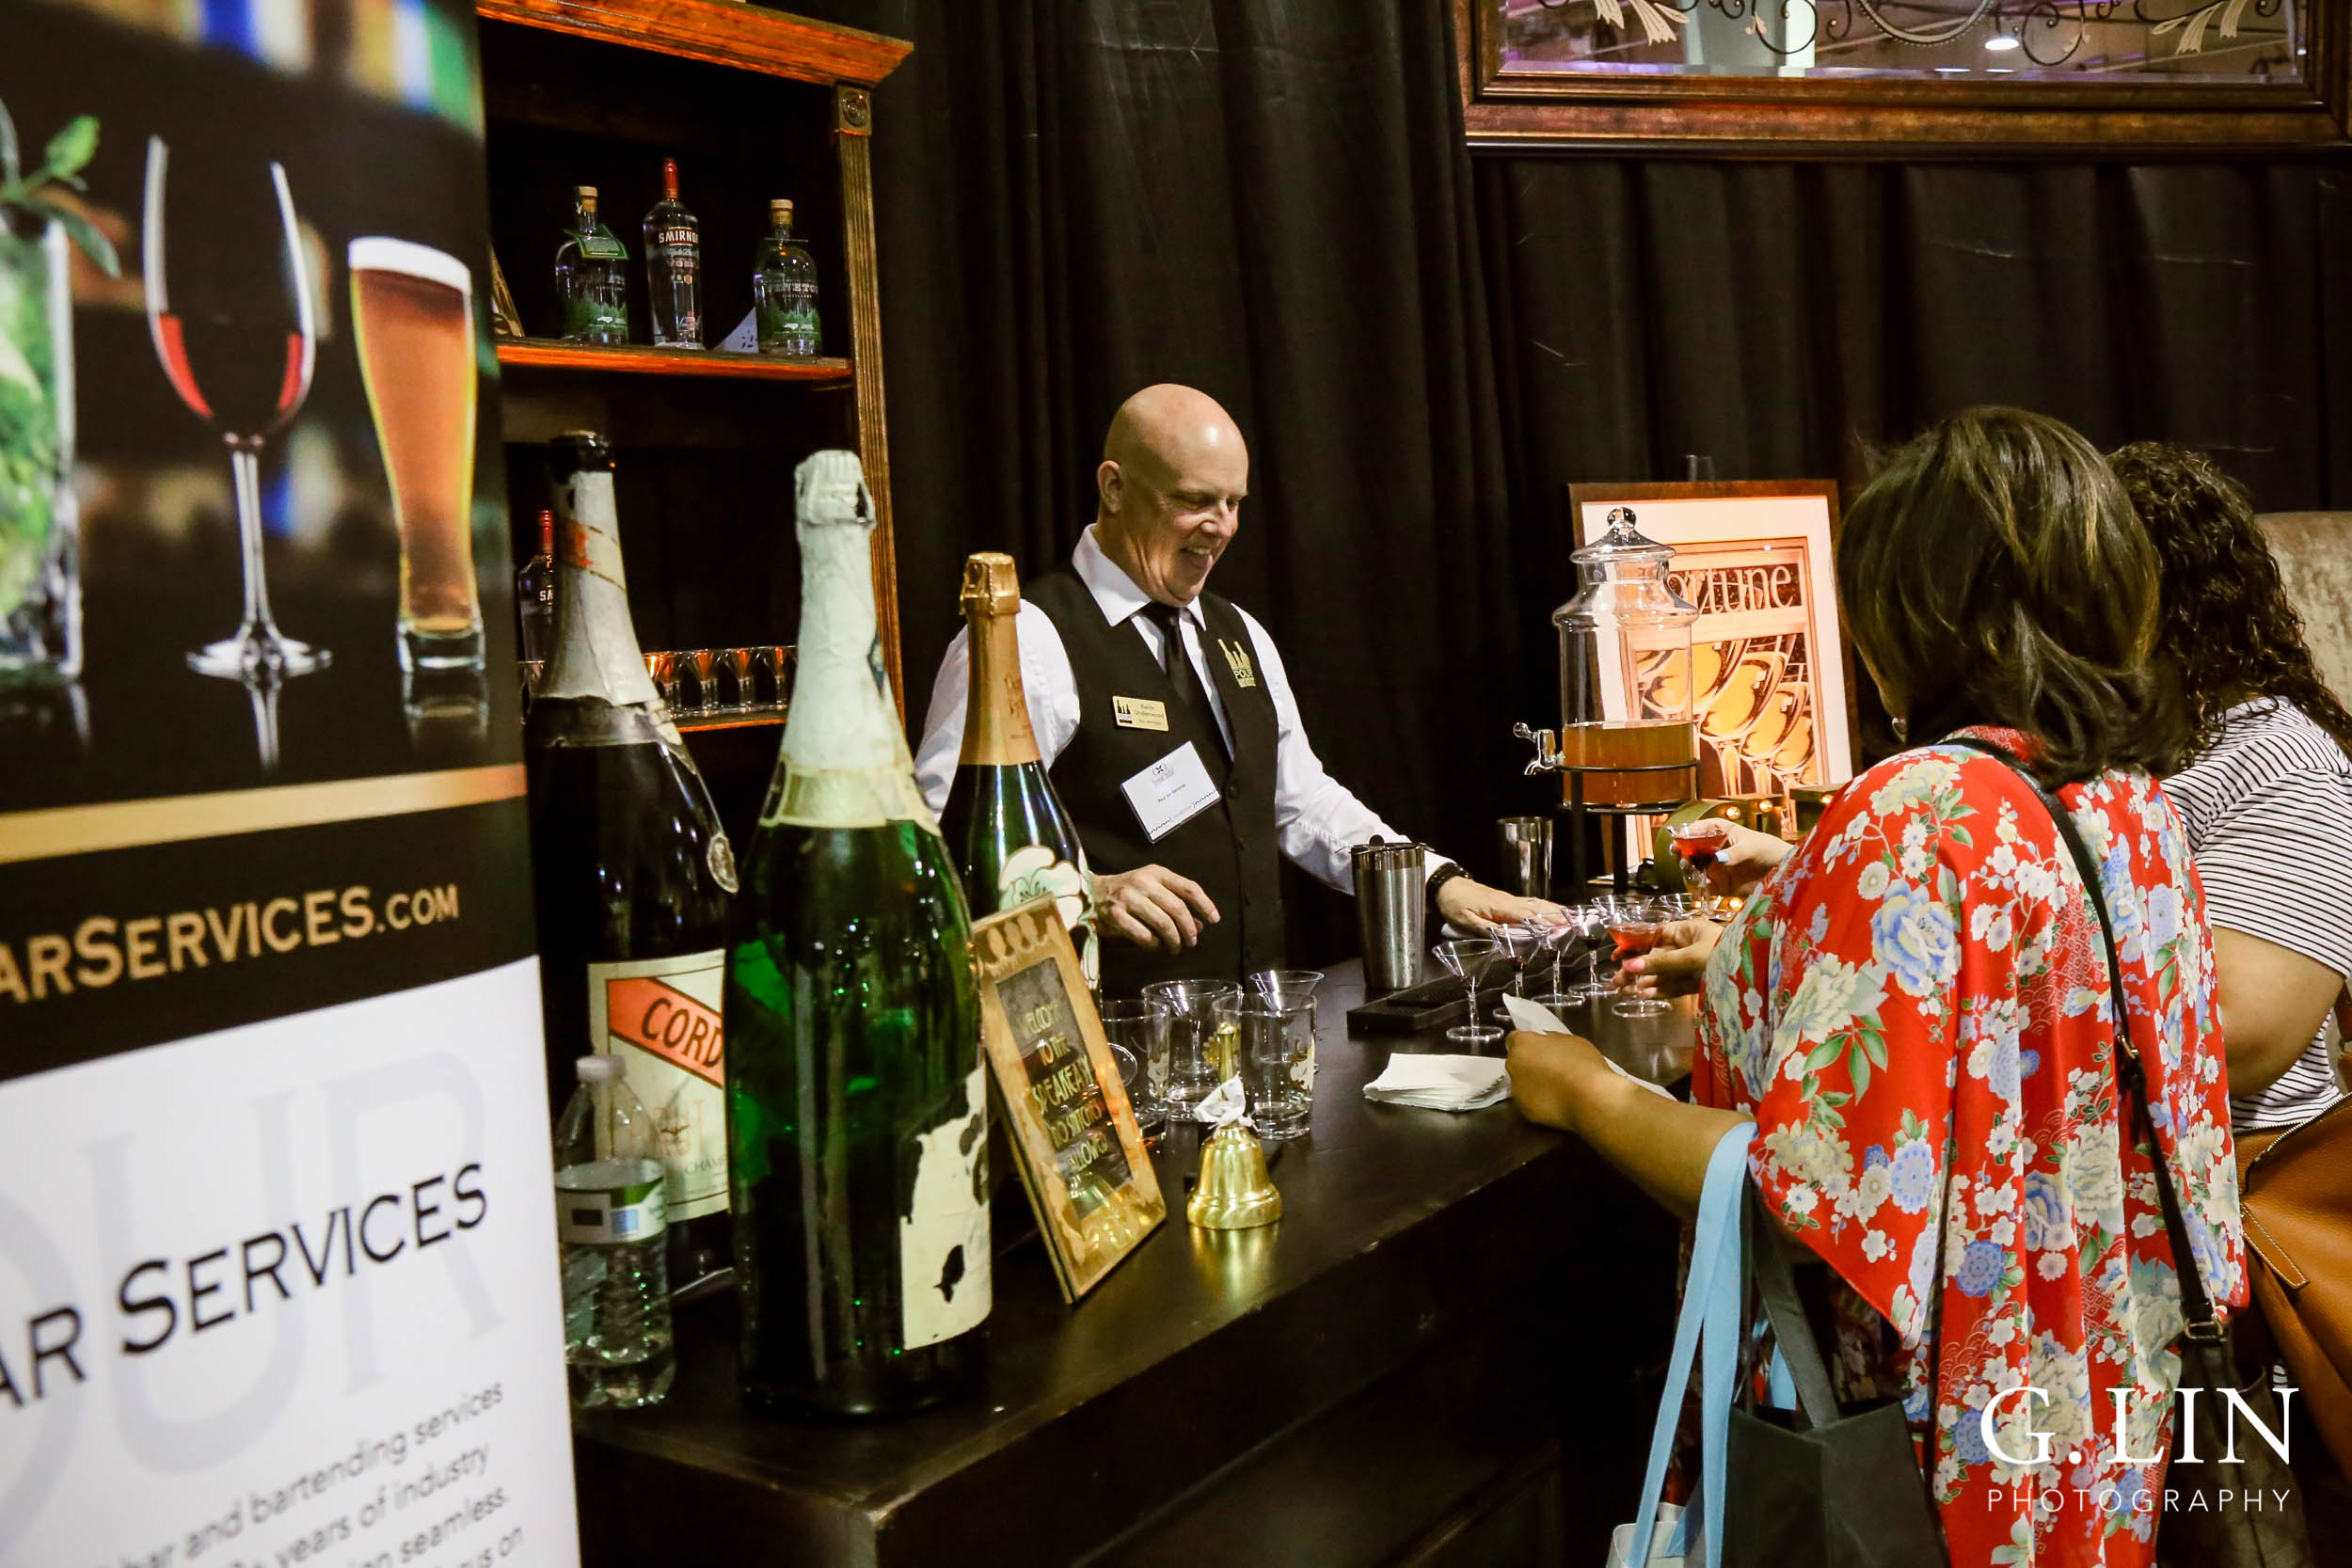 Raleigh Event Photographer | G. Lin Photography | Vendor pouring drinks for guests at wedding show